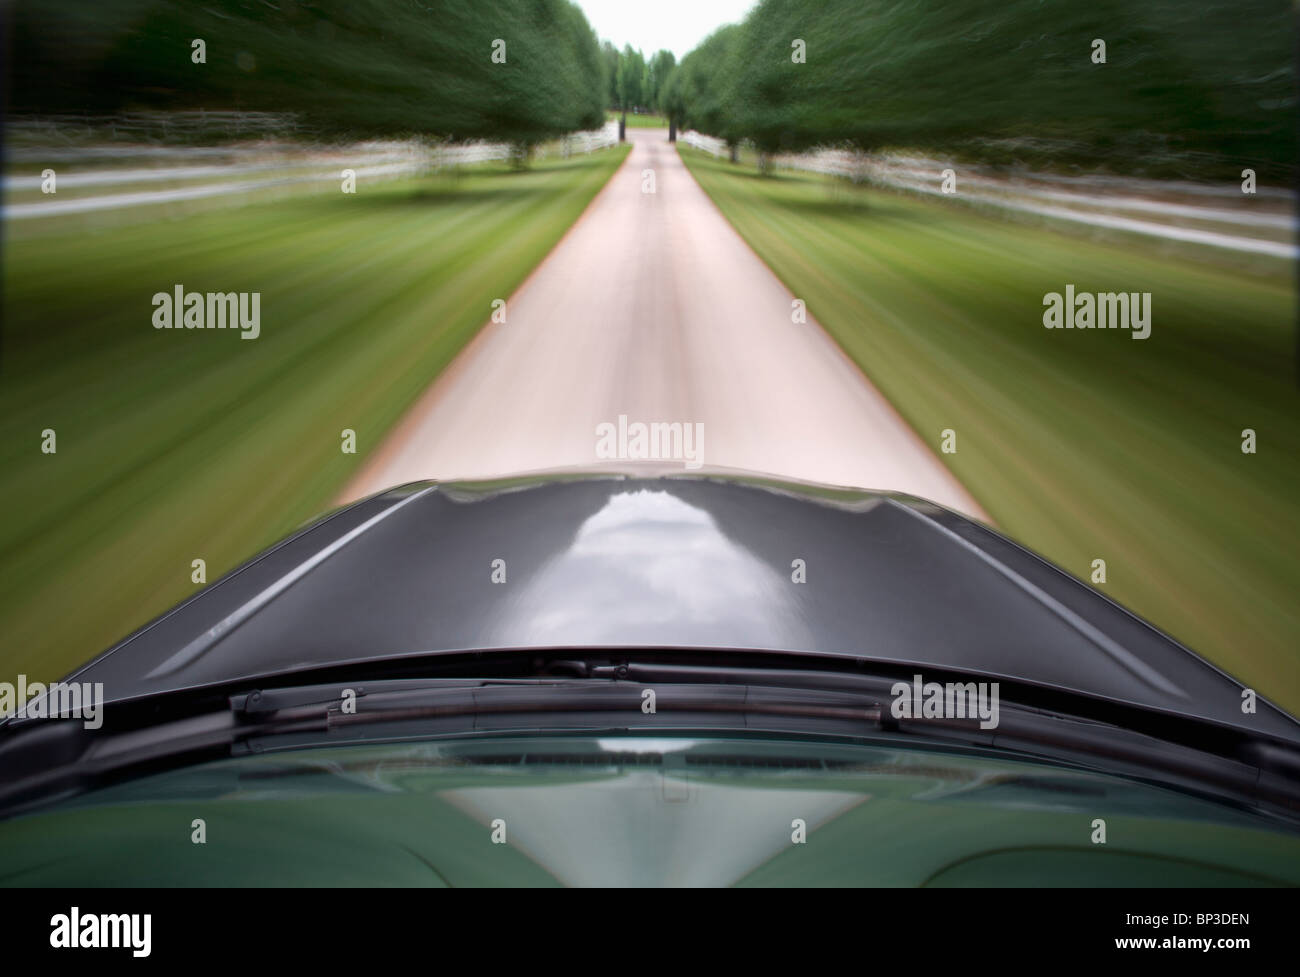 Pix of Car in motion on Kentucky Road - Stock Image